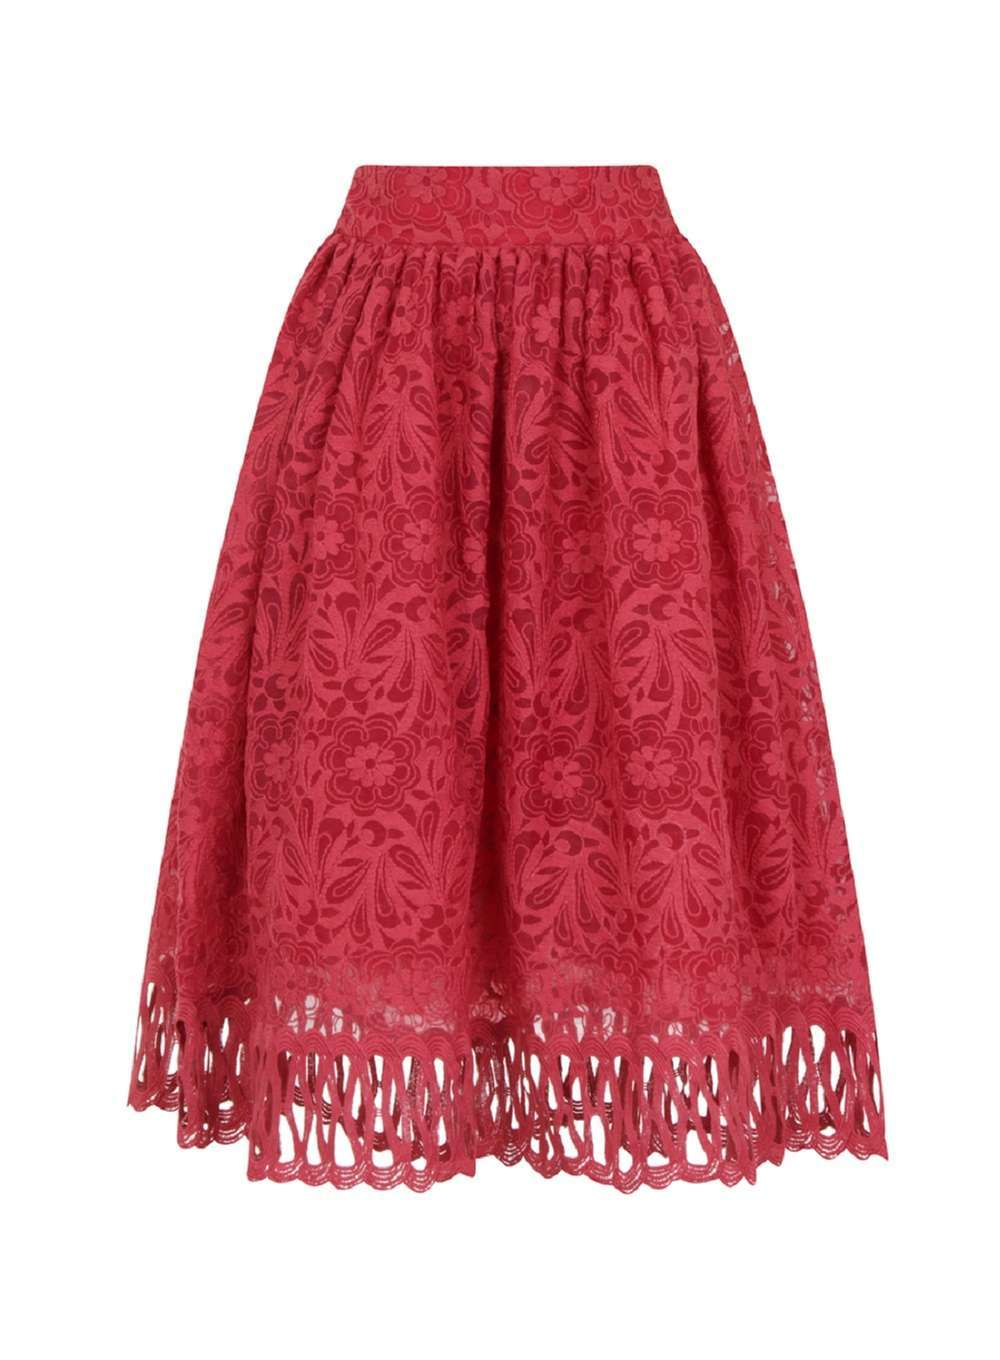 Womens *Chi Chi London Red Cutwork Midi Skirt Red - style: full/prom skirt; fit: loose/voluminous; waist: mid/regular rise; predominant colour: true red; occasions: evening; length: on the knee; fibres: polyester/polyamide - 100%; pattern type: fabric; pattern: patterned/print; texture group: other - light to midweight; season: a/w 2016; wardrobe: event